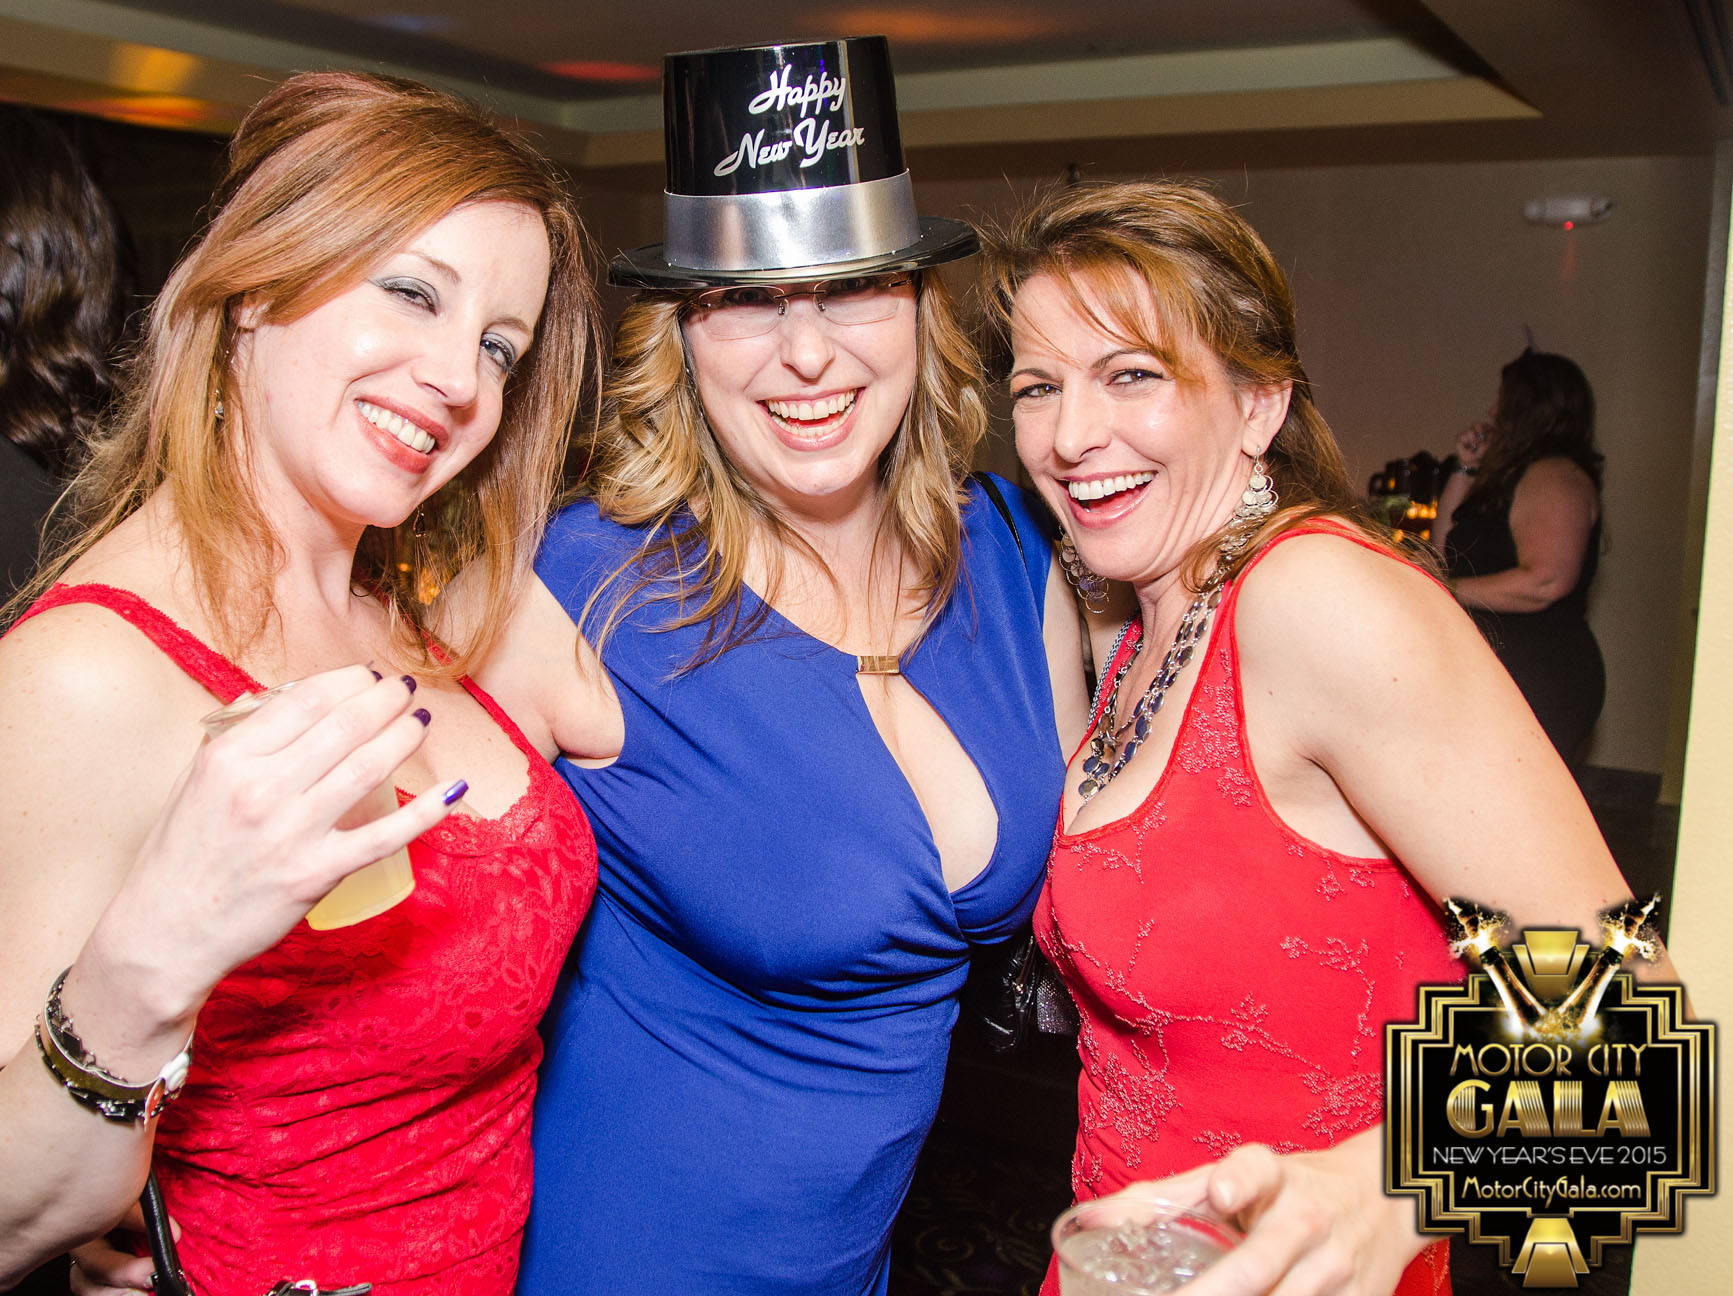 New Year's Eve Detroit at The Motor City Gala   DETROIT'S ...